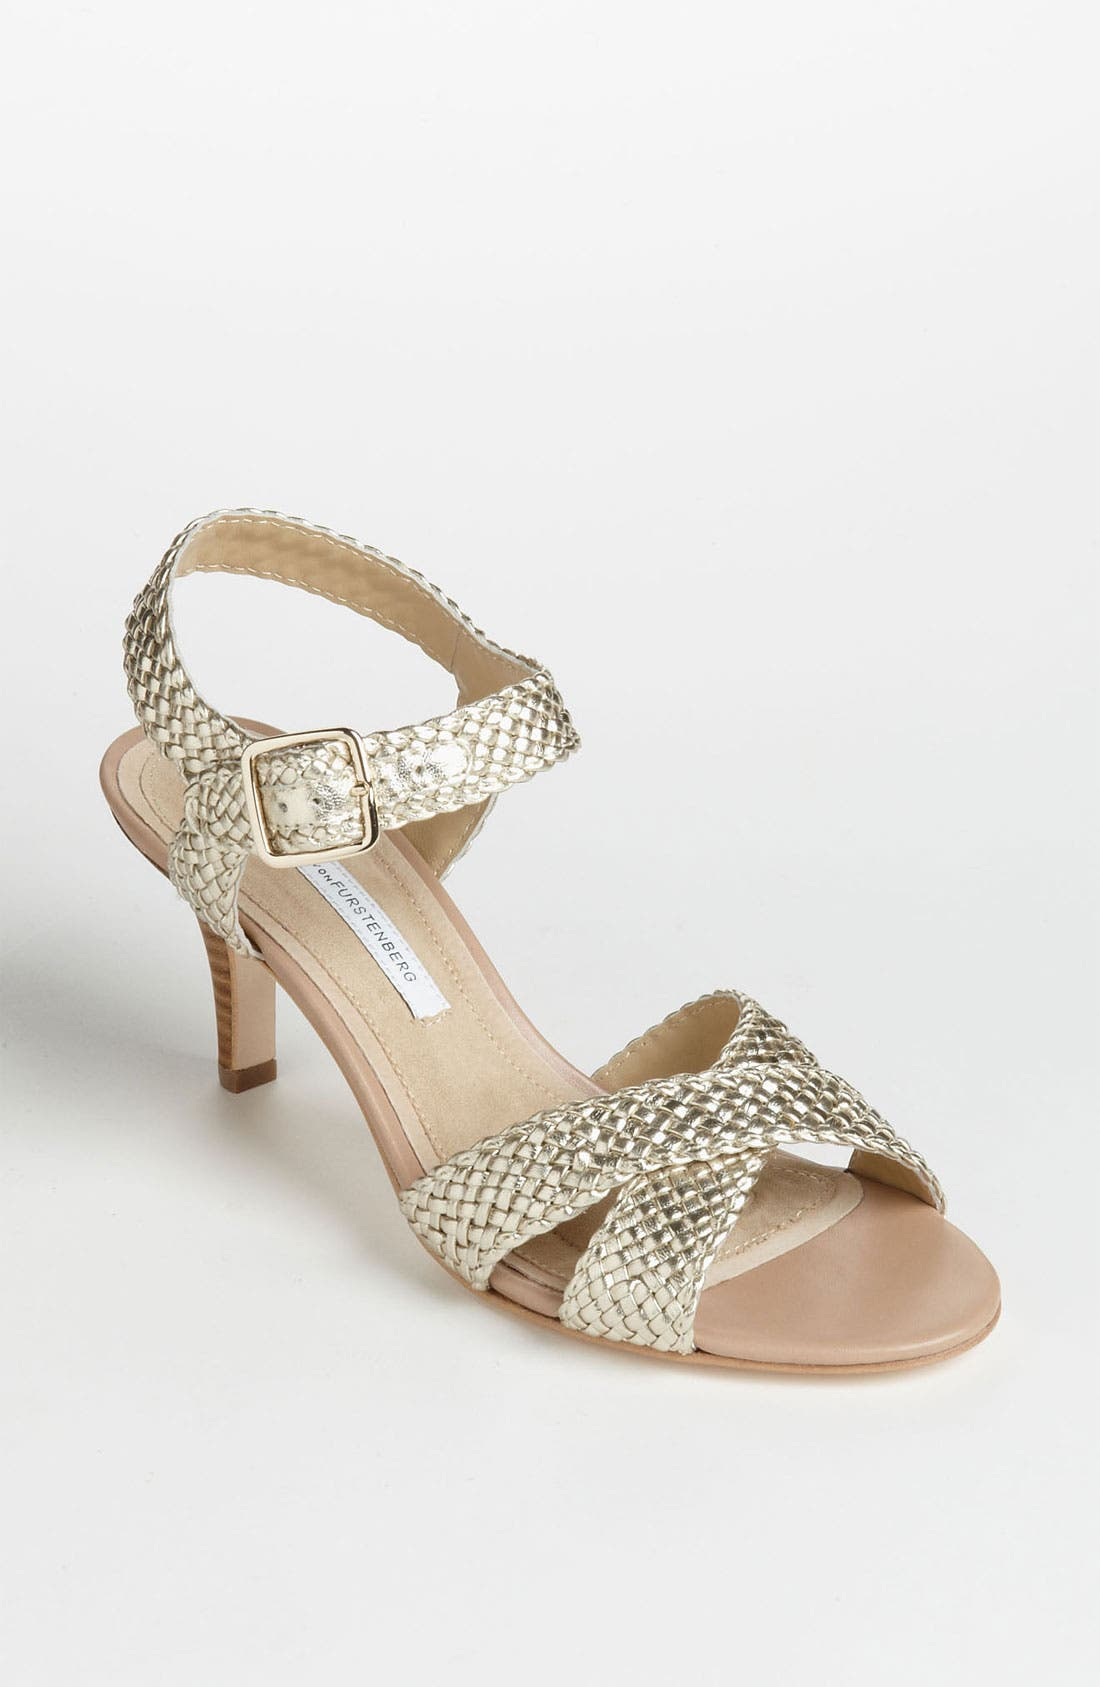 Alternate Image 1 Selected - Diane von Furstenberg 'Villana' Sandal